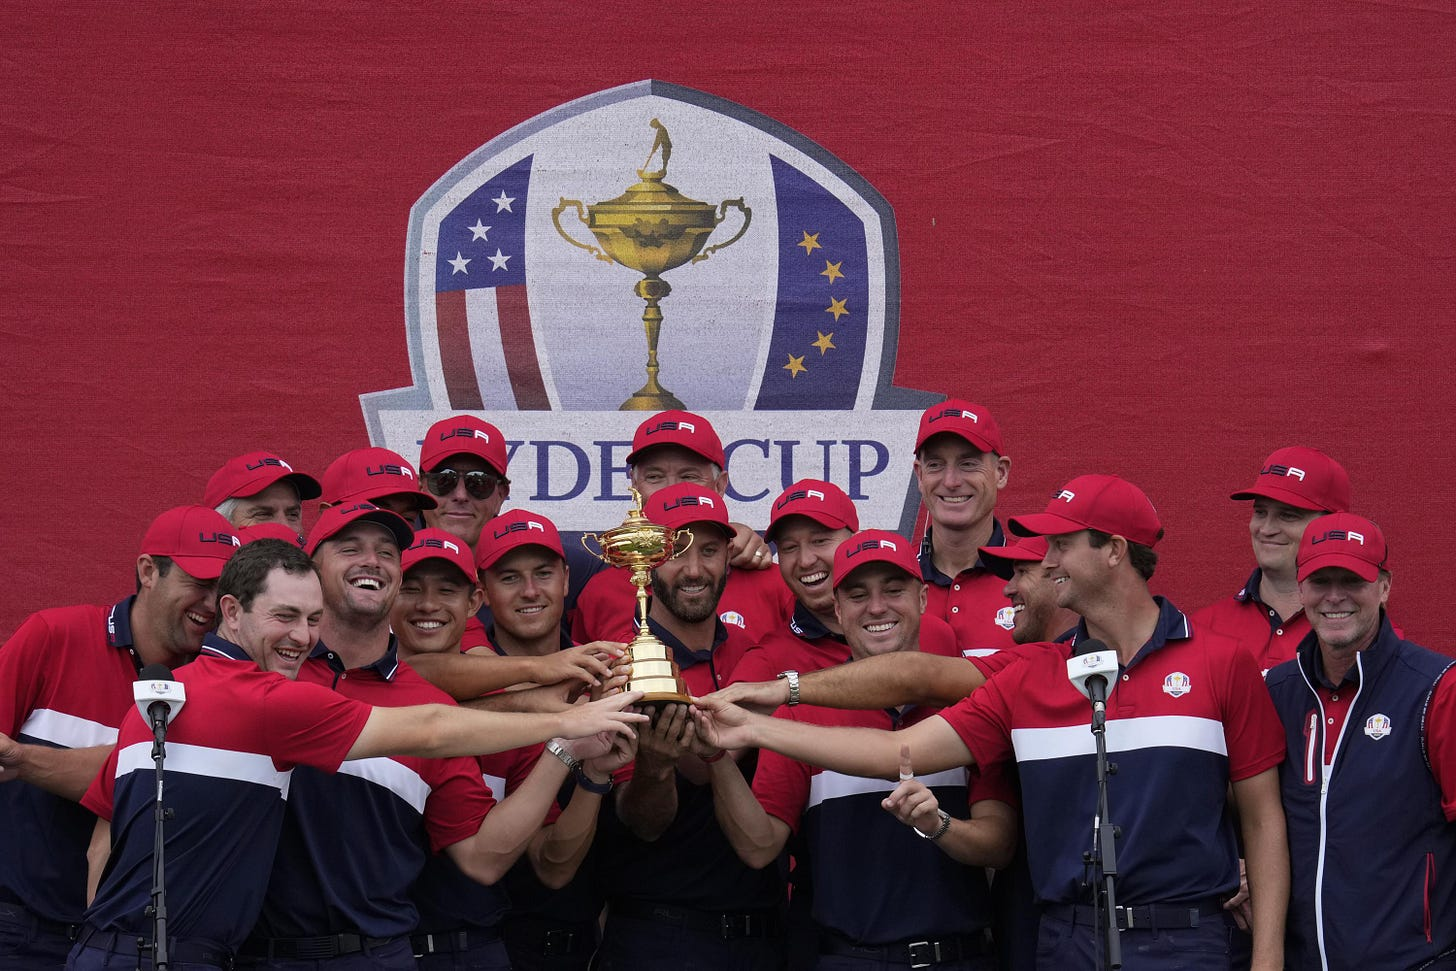 Resounding US Ryder Cup win could be start of something big